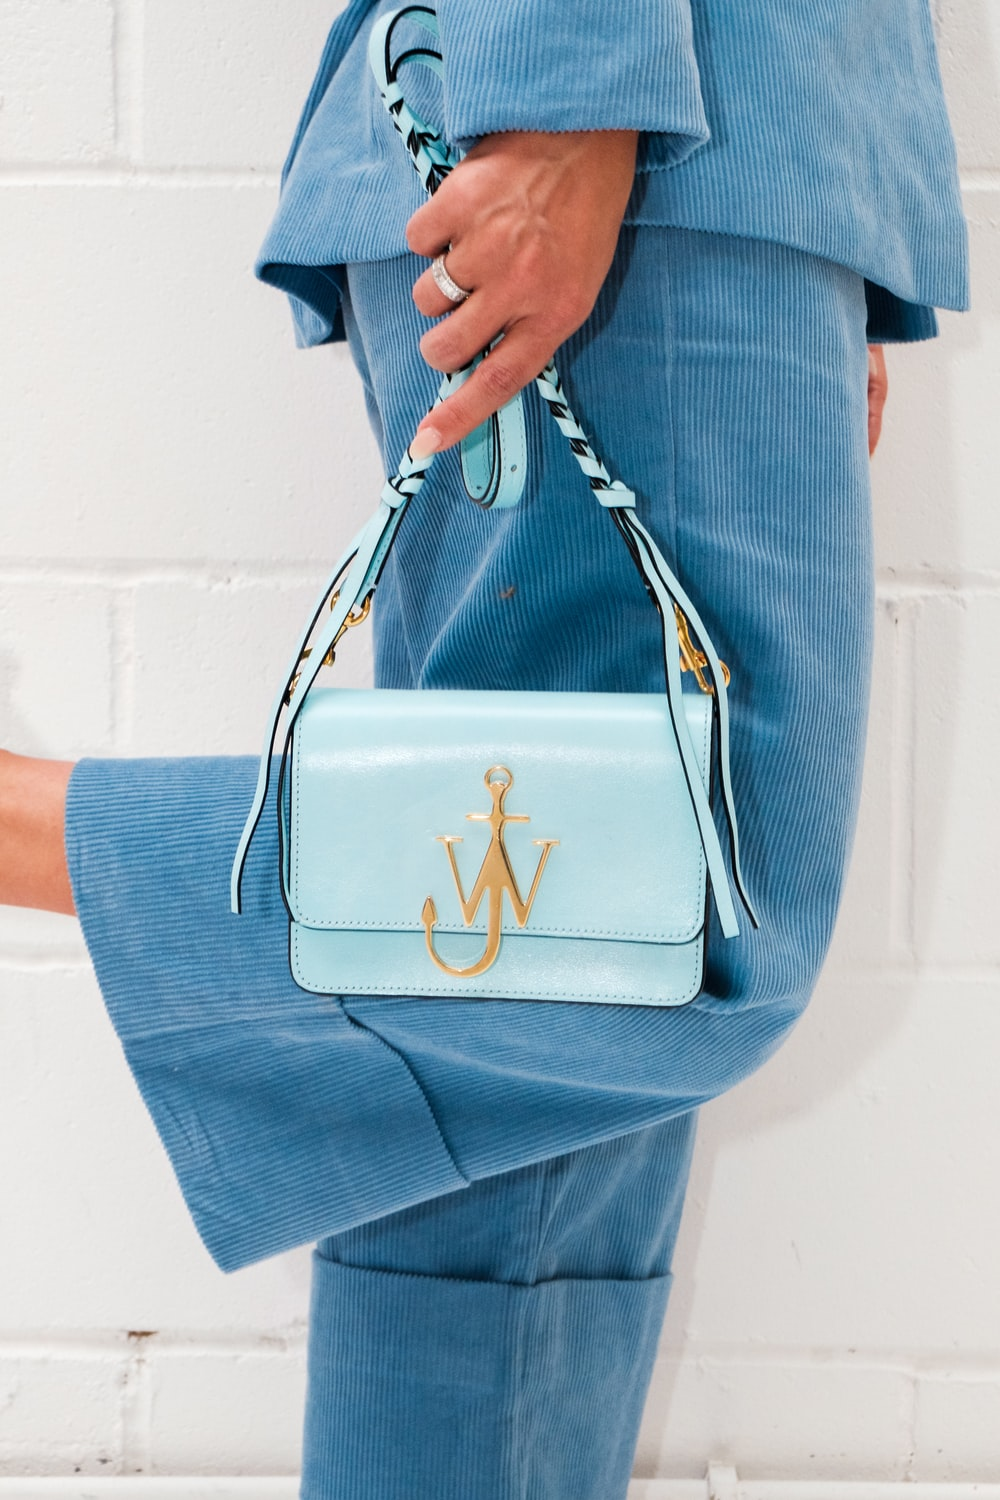 person in blue denim jeans holding white leather handbag